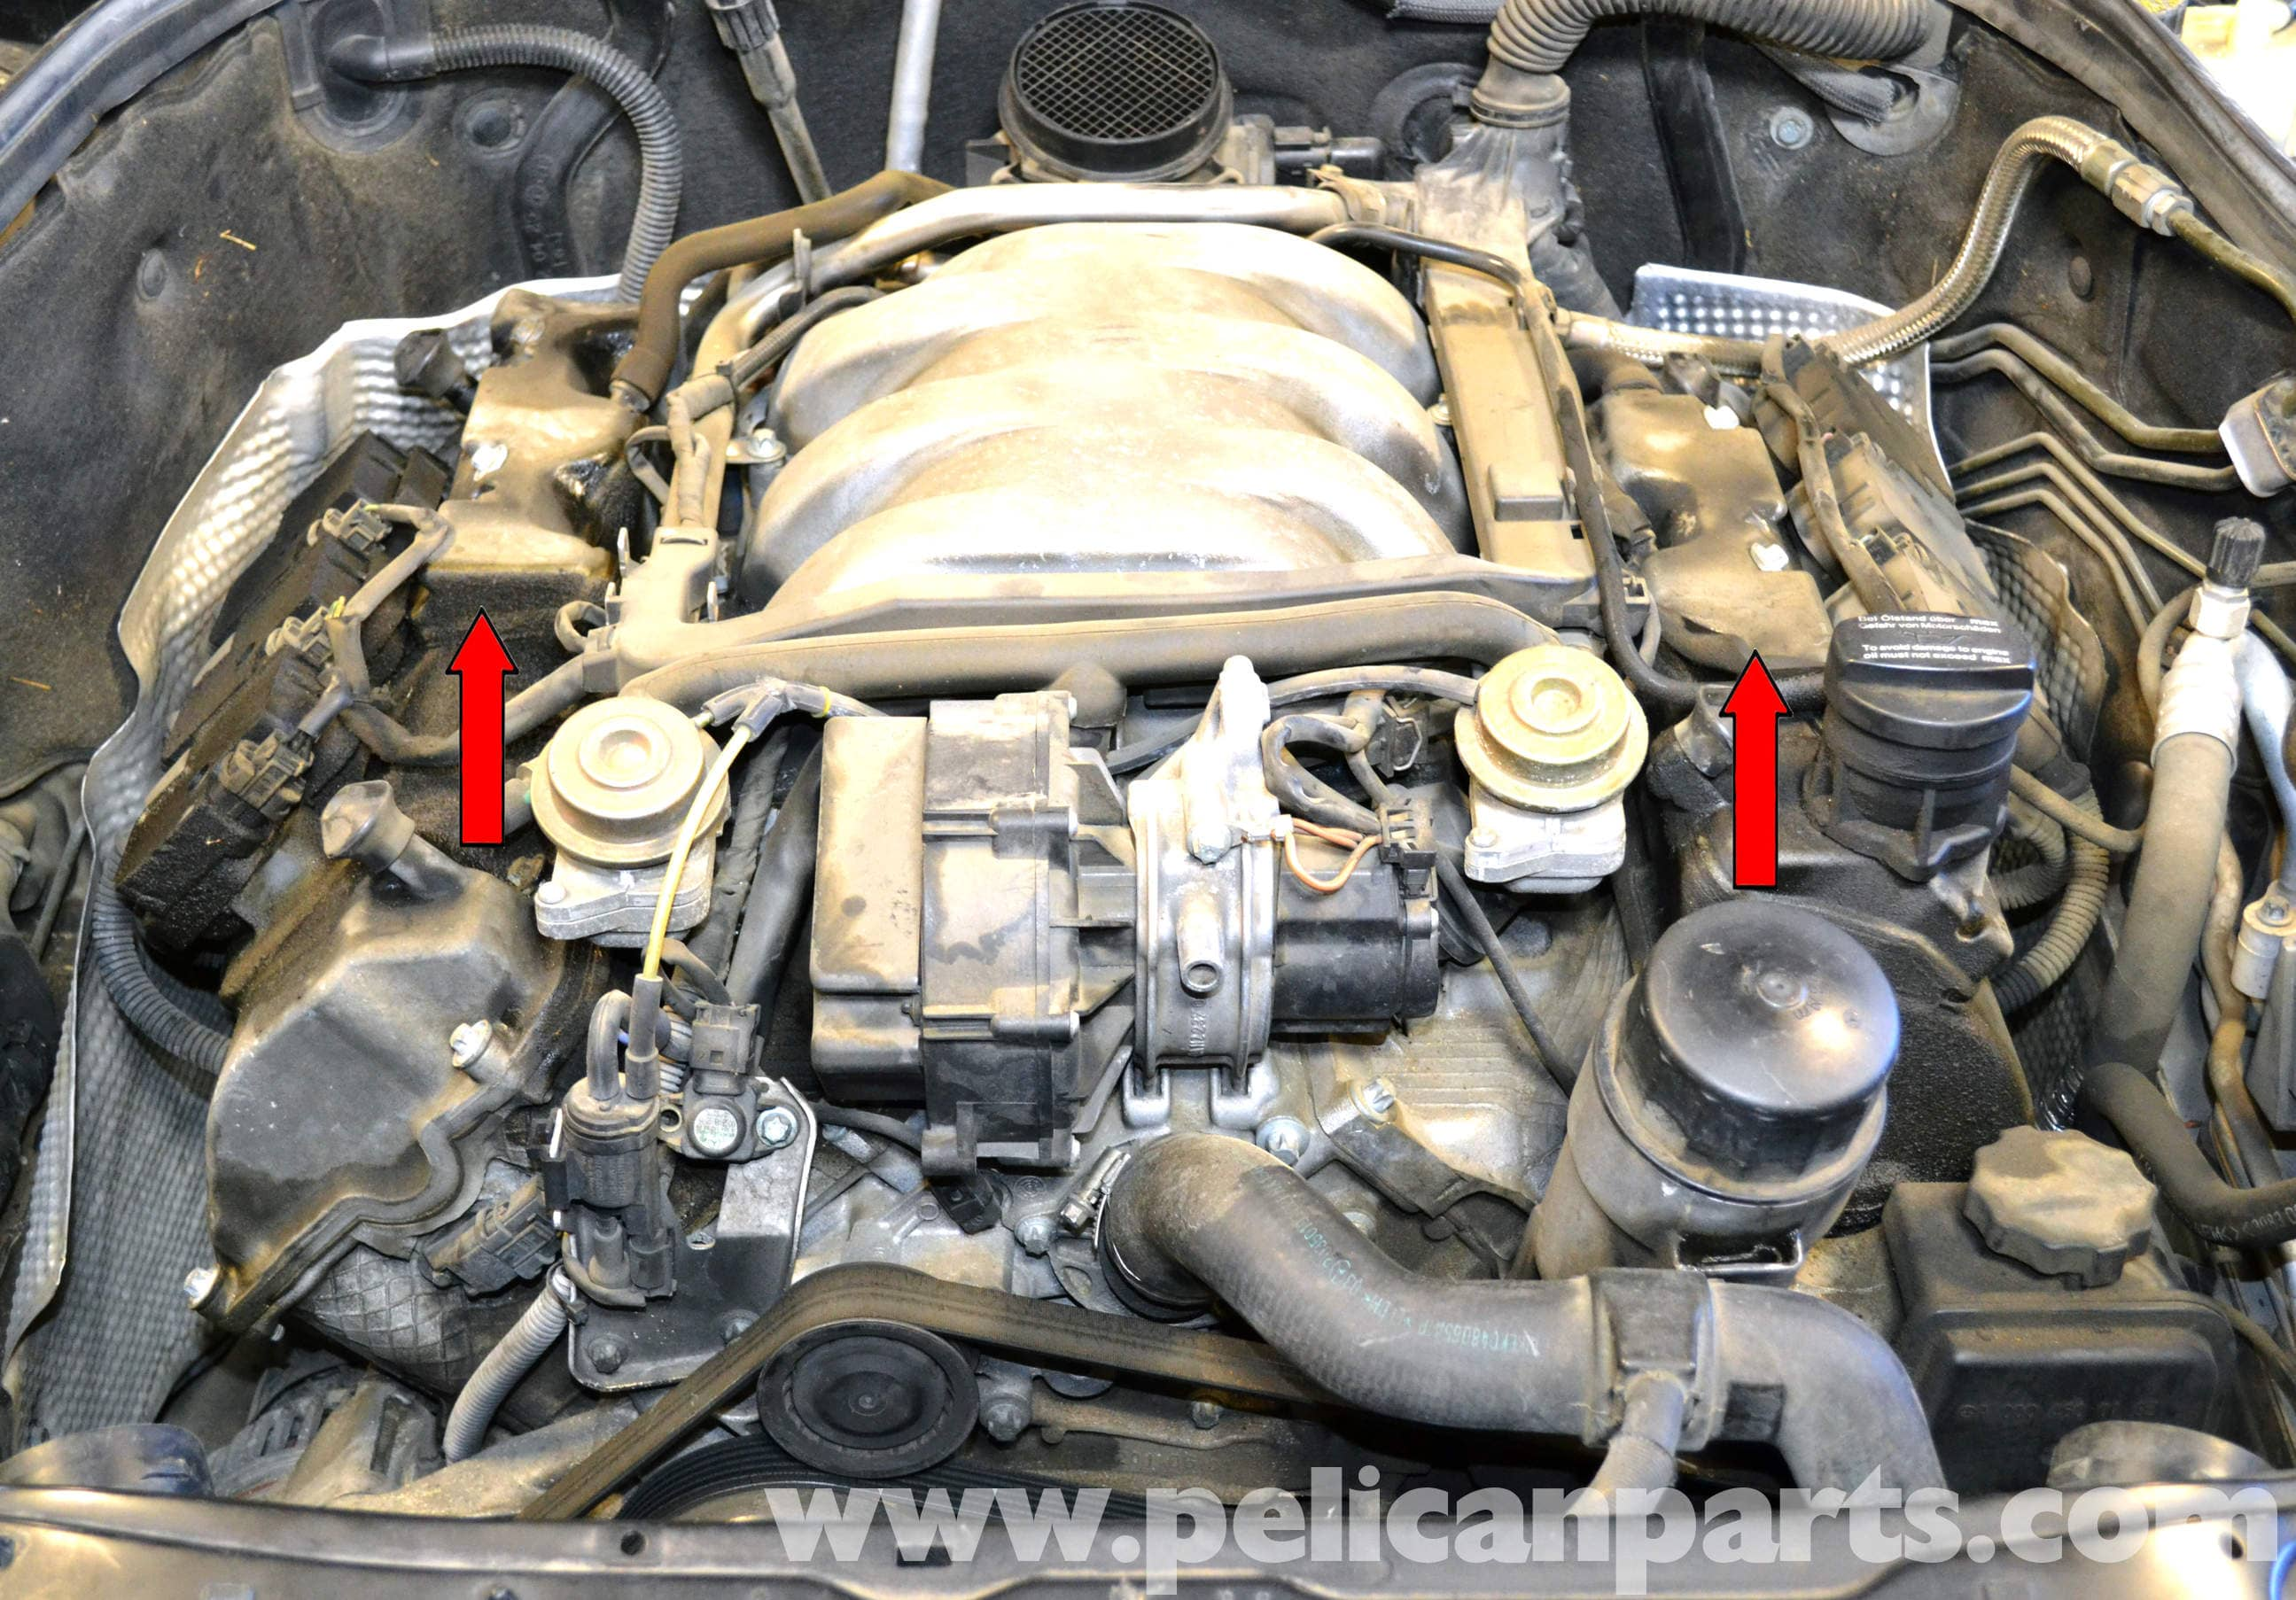 pic07 mercedes benz w203 valve cover gasket replacement (2001 2007